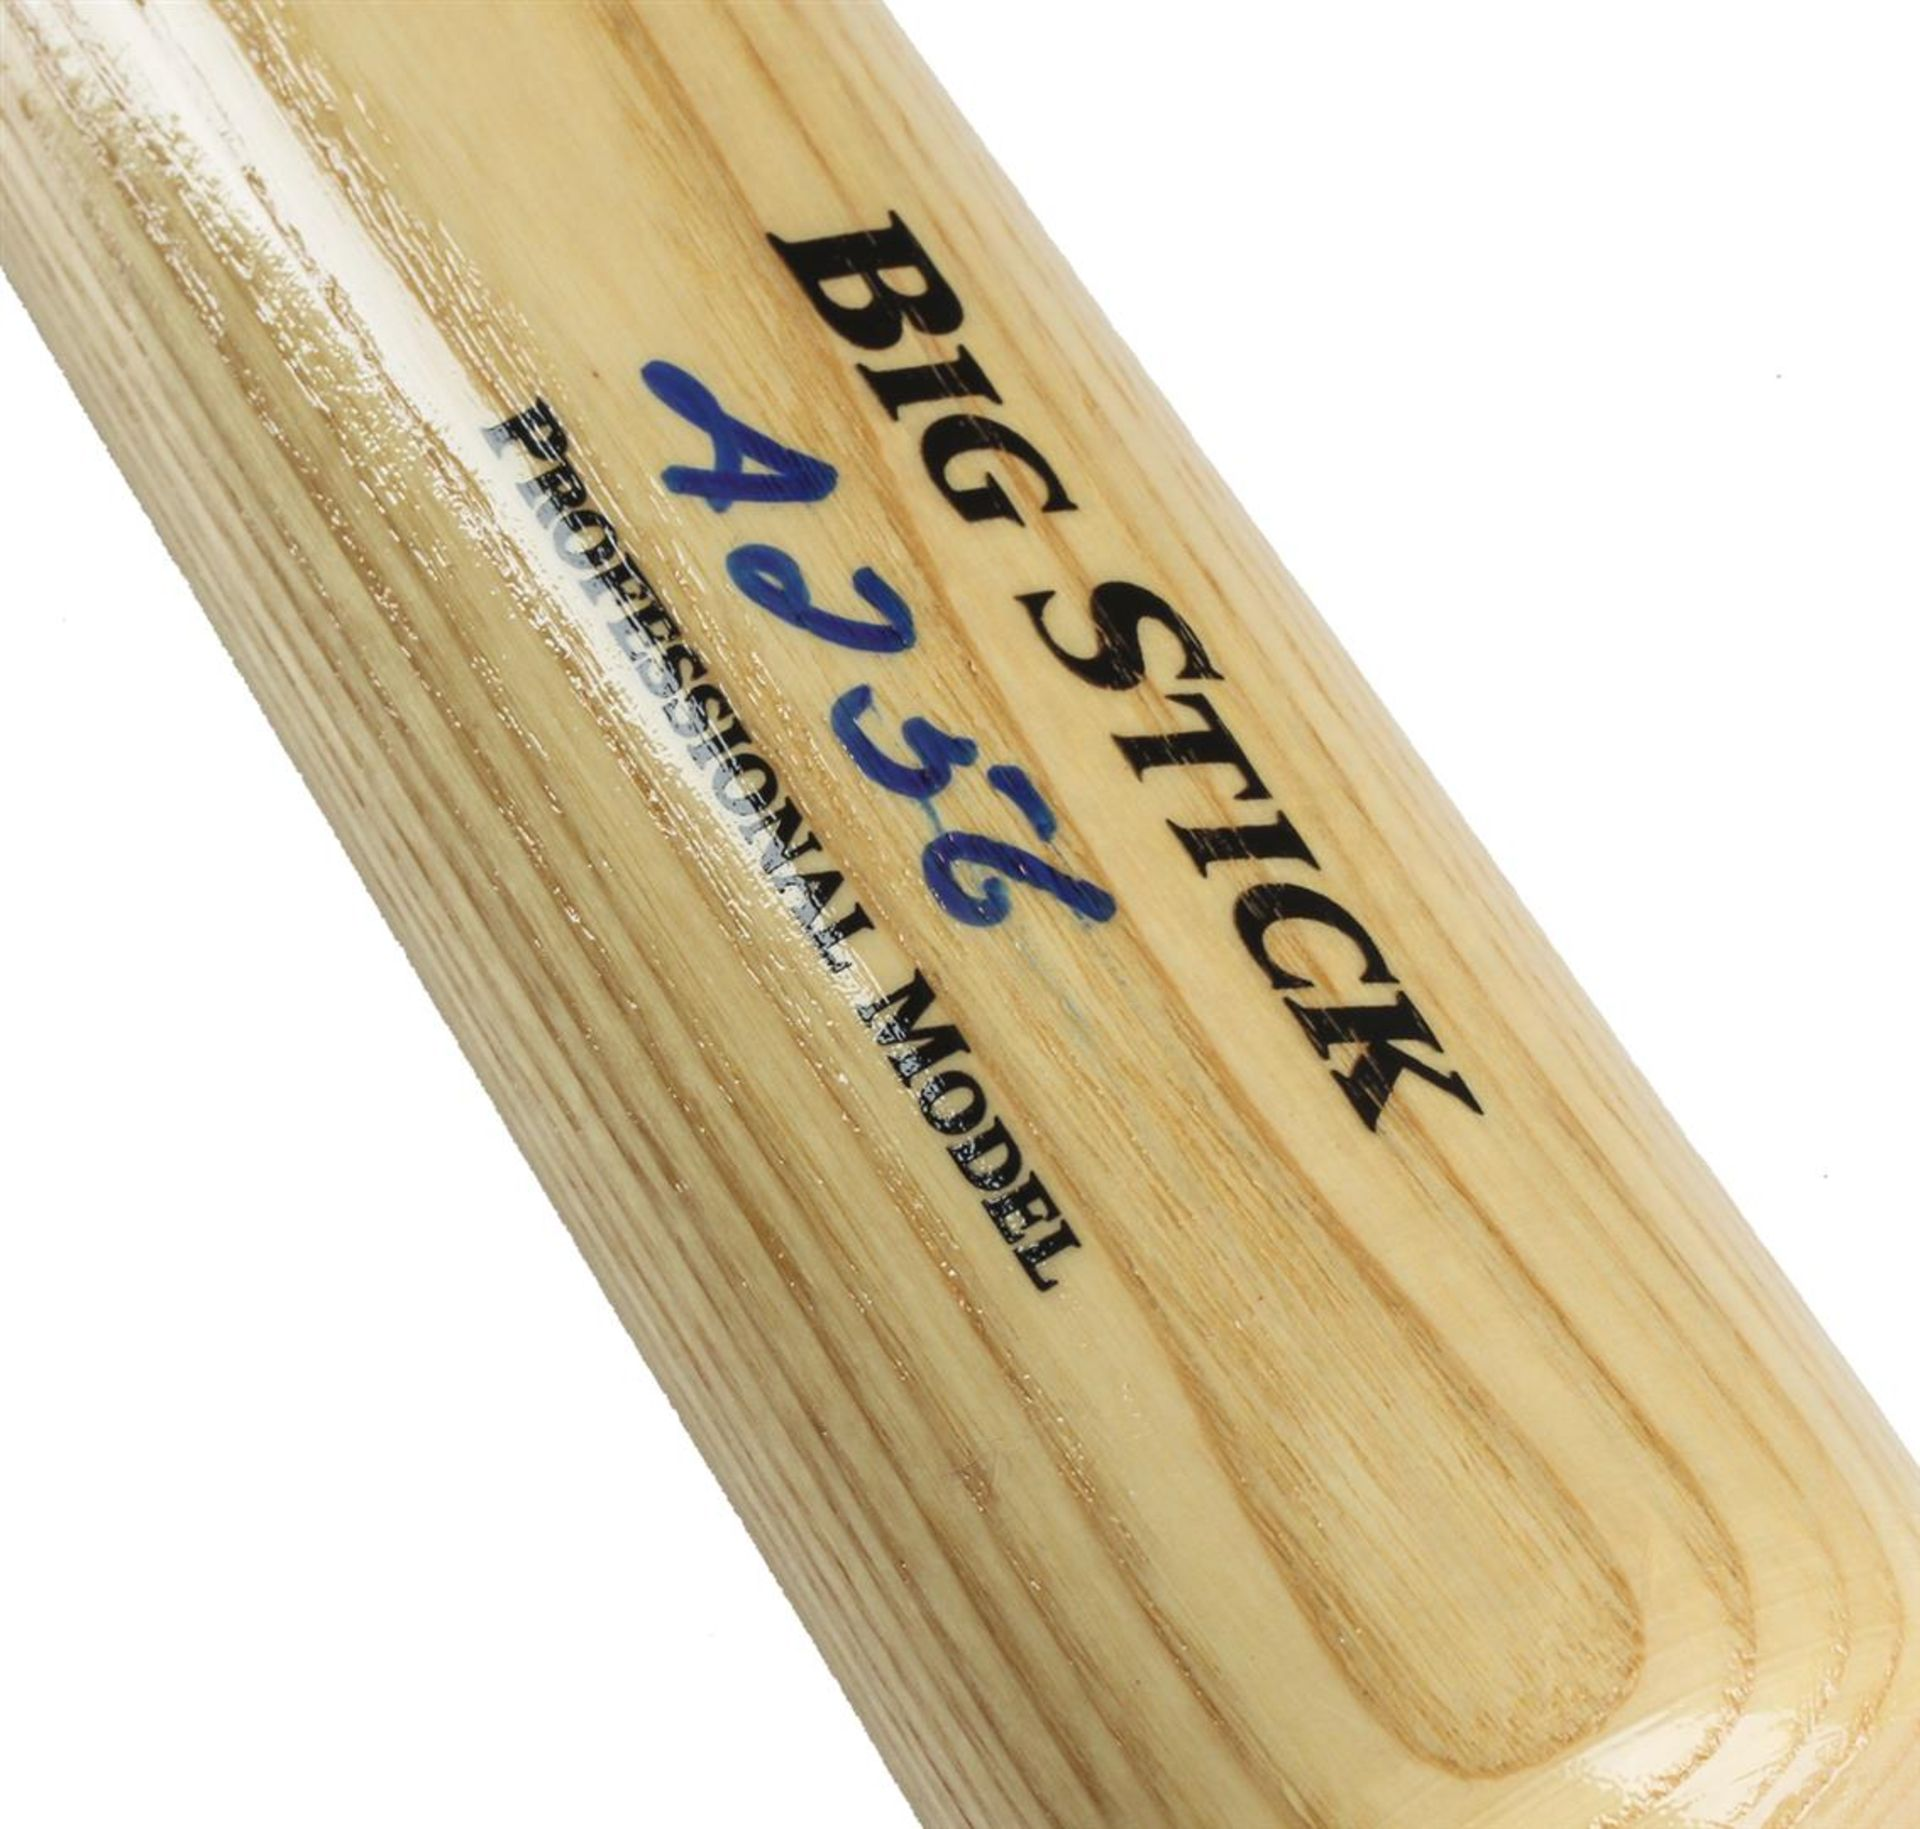 Autographed Pete Rose Baseball Bat - Image 3 of 3